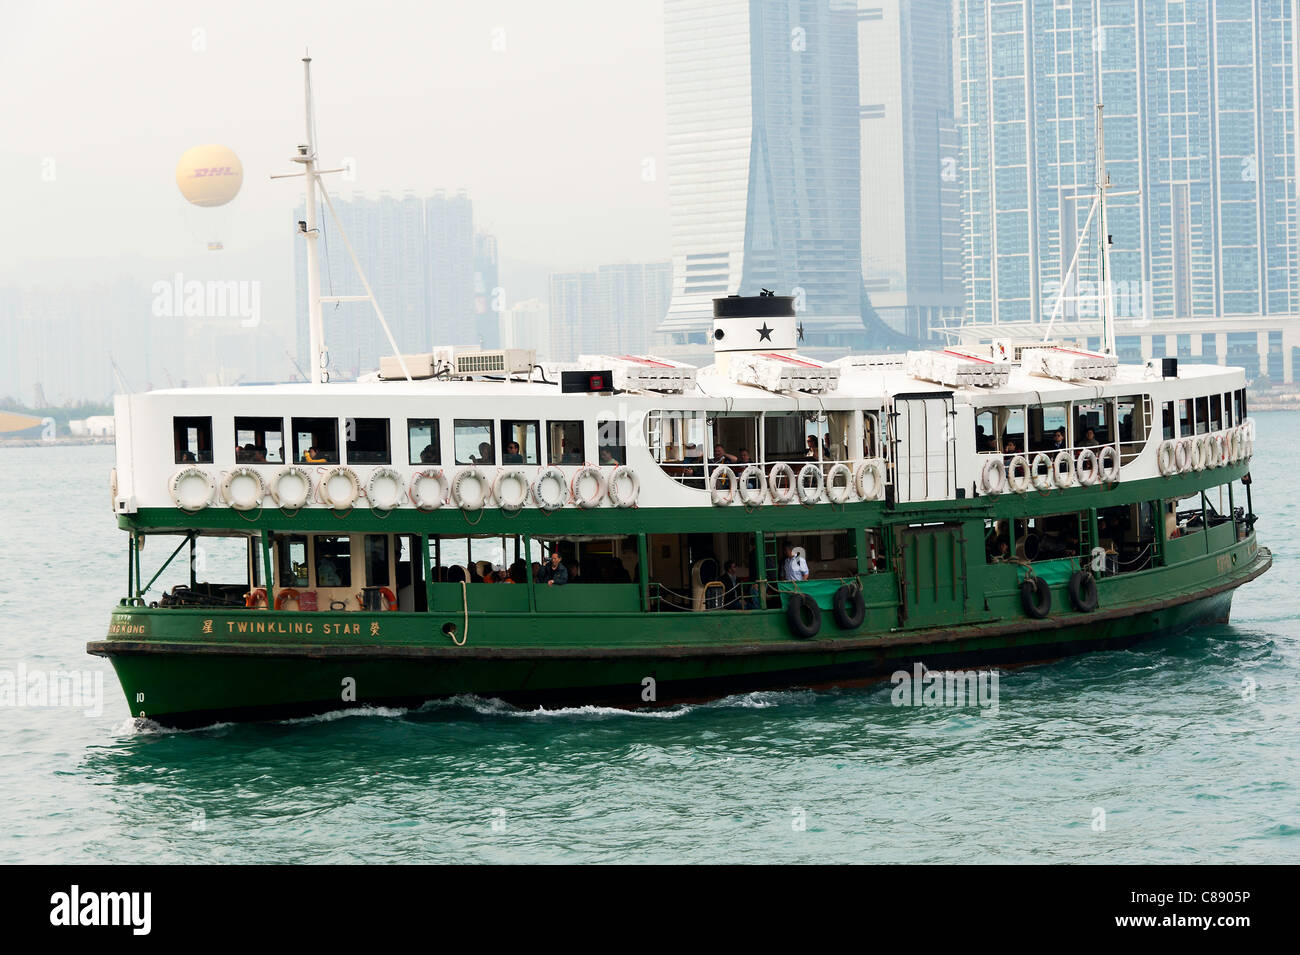 Star Ferry Line Ferryboat Twinkling Star Sailing from Central Pier Honk Kong Island Towards Kowloon China Asia - Stock Image